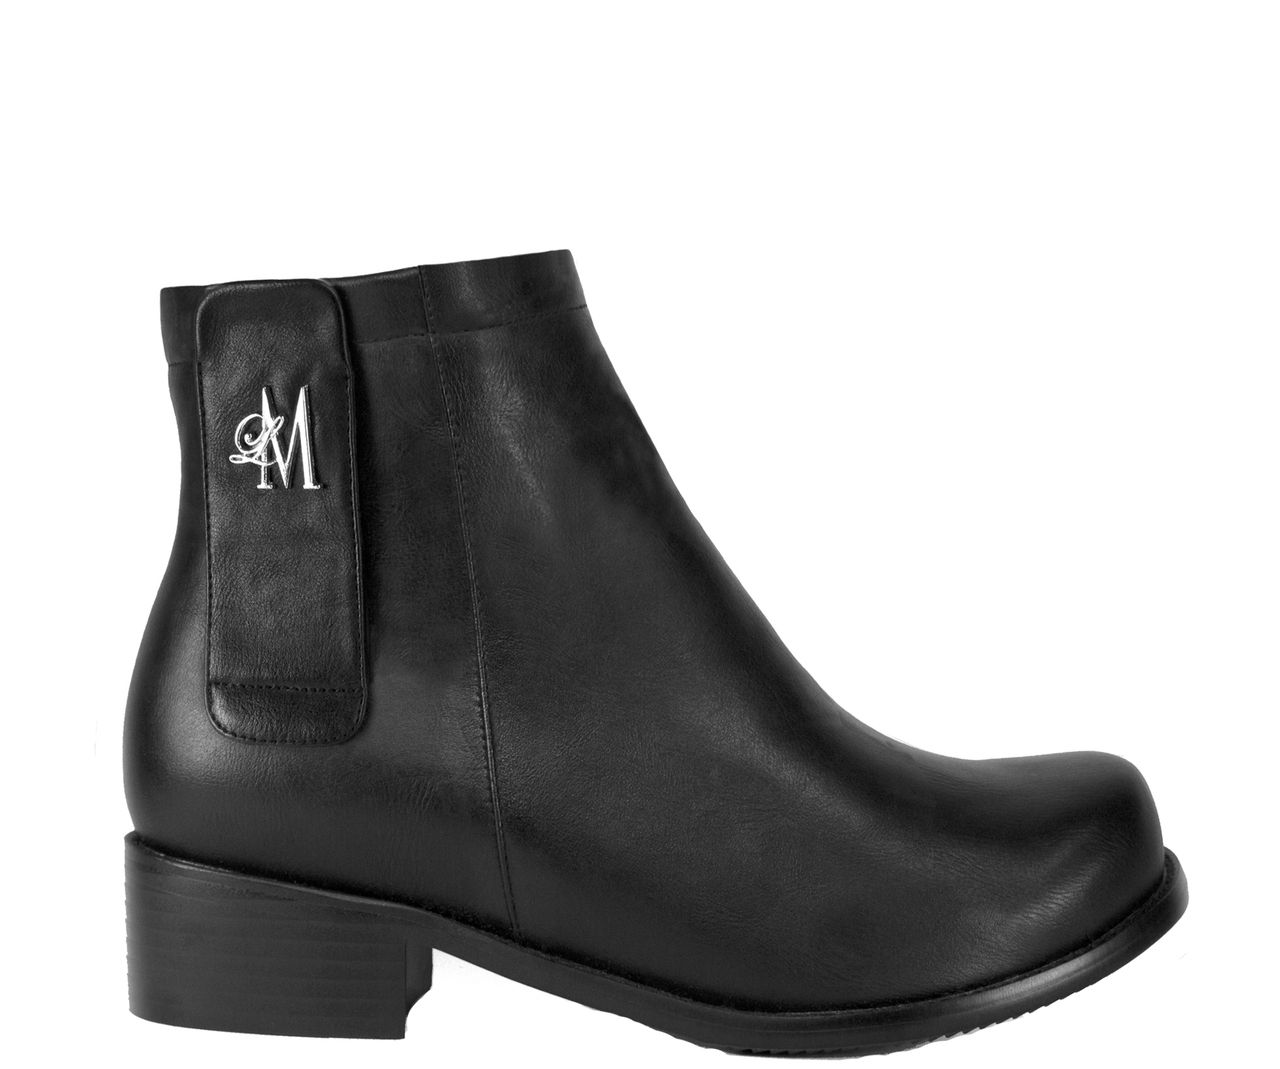 Llynda More Boots - 'More Luck' Black Ankle Boot, $99.00 (http://store.llyndamoreboots.com/more-luck-black-ankle-boot/)